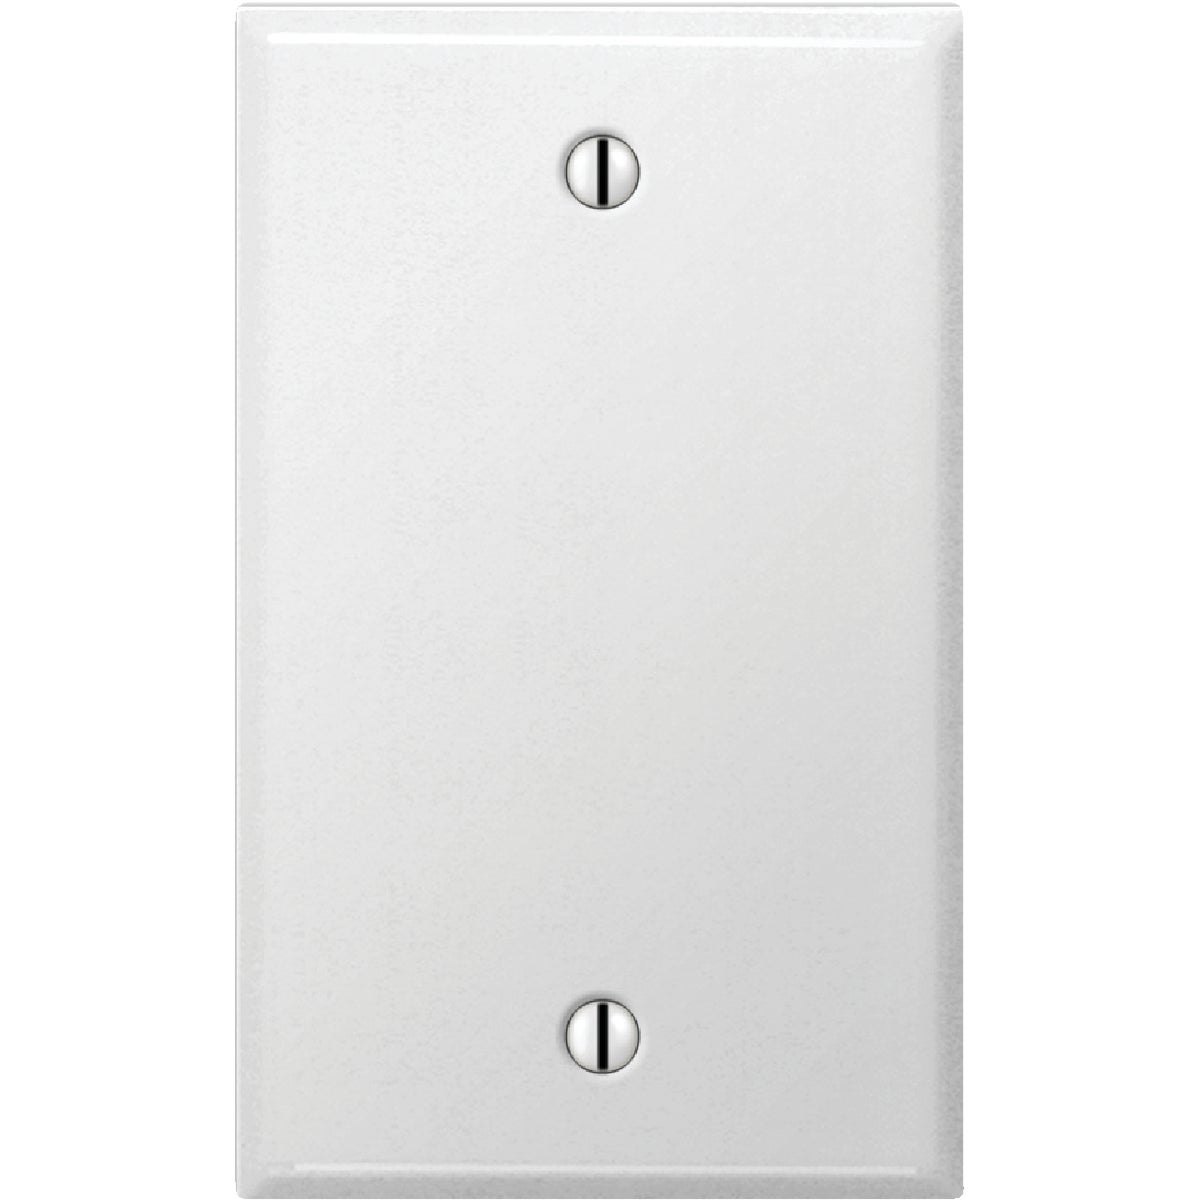 WHT BLANK STL WALL PLATE - 8WS100 by Jackson Deerfield Mf